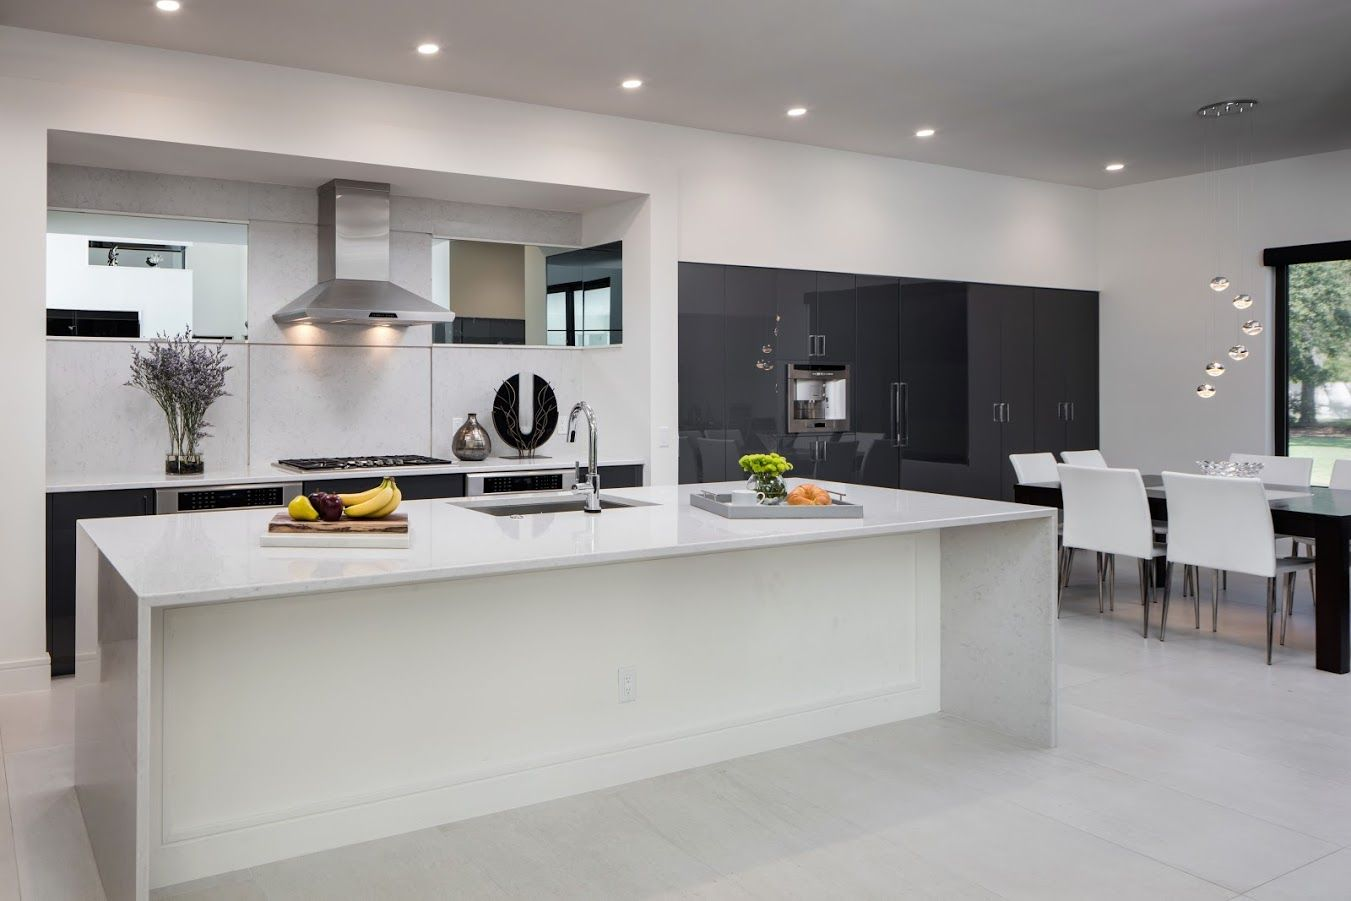 Modern Acrylic Gloss Kitchen Designed By Monarch Kitchen And Bath Design Monarchkitchenandbathdesig Kitchen Refurbishment Kitchen And Bath Design House Design